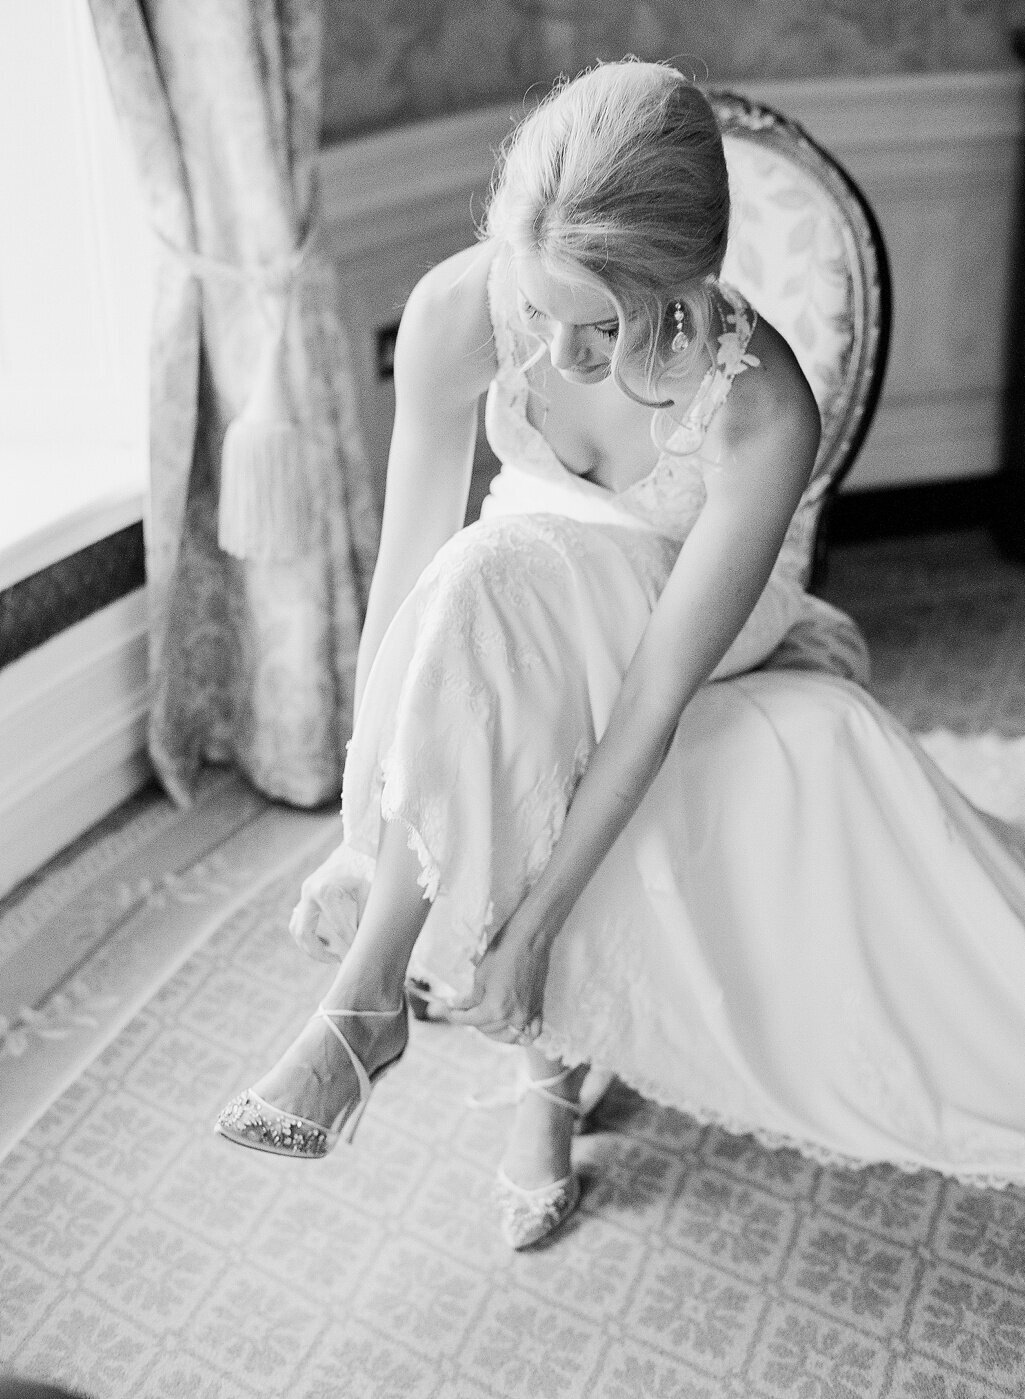 Jessie-Barksdale-Photography_K-Club-Ireland-Destination-Wedding-Photographer_0040